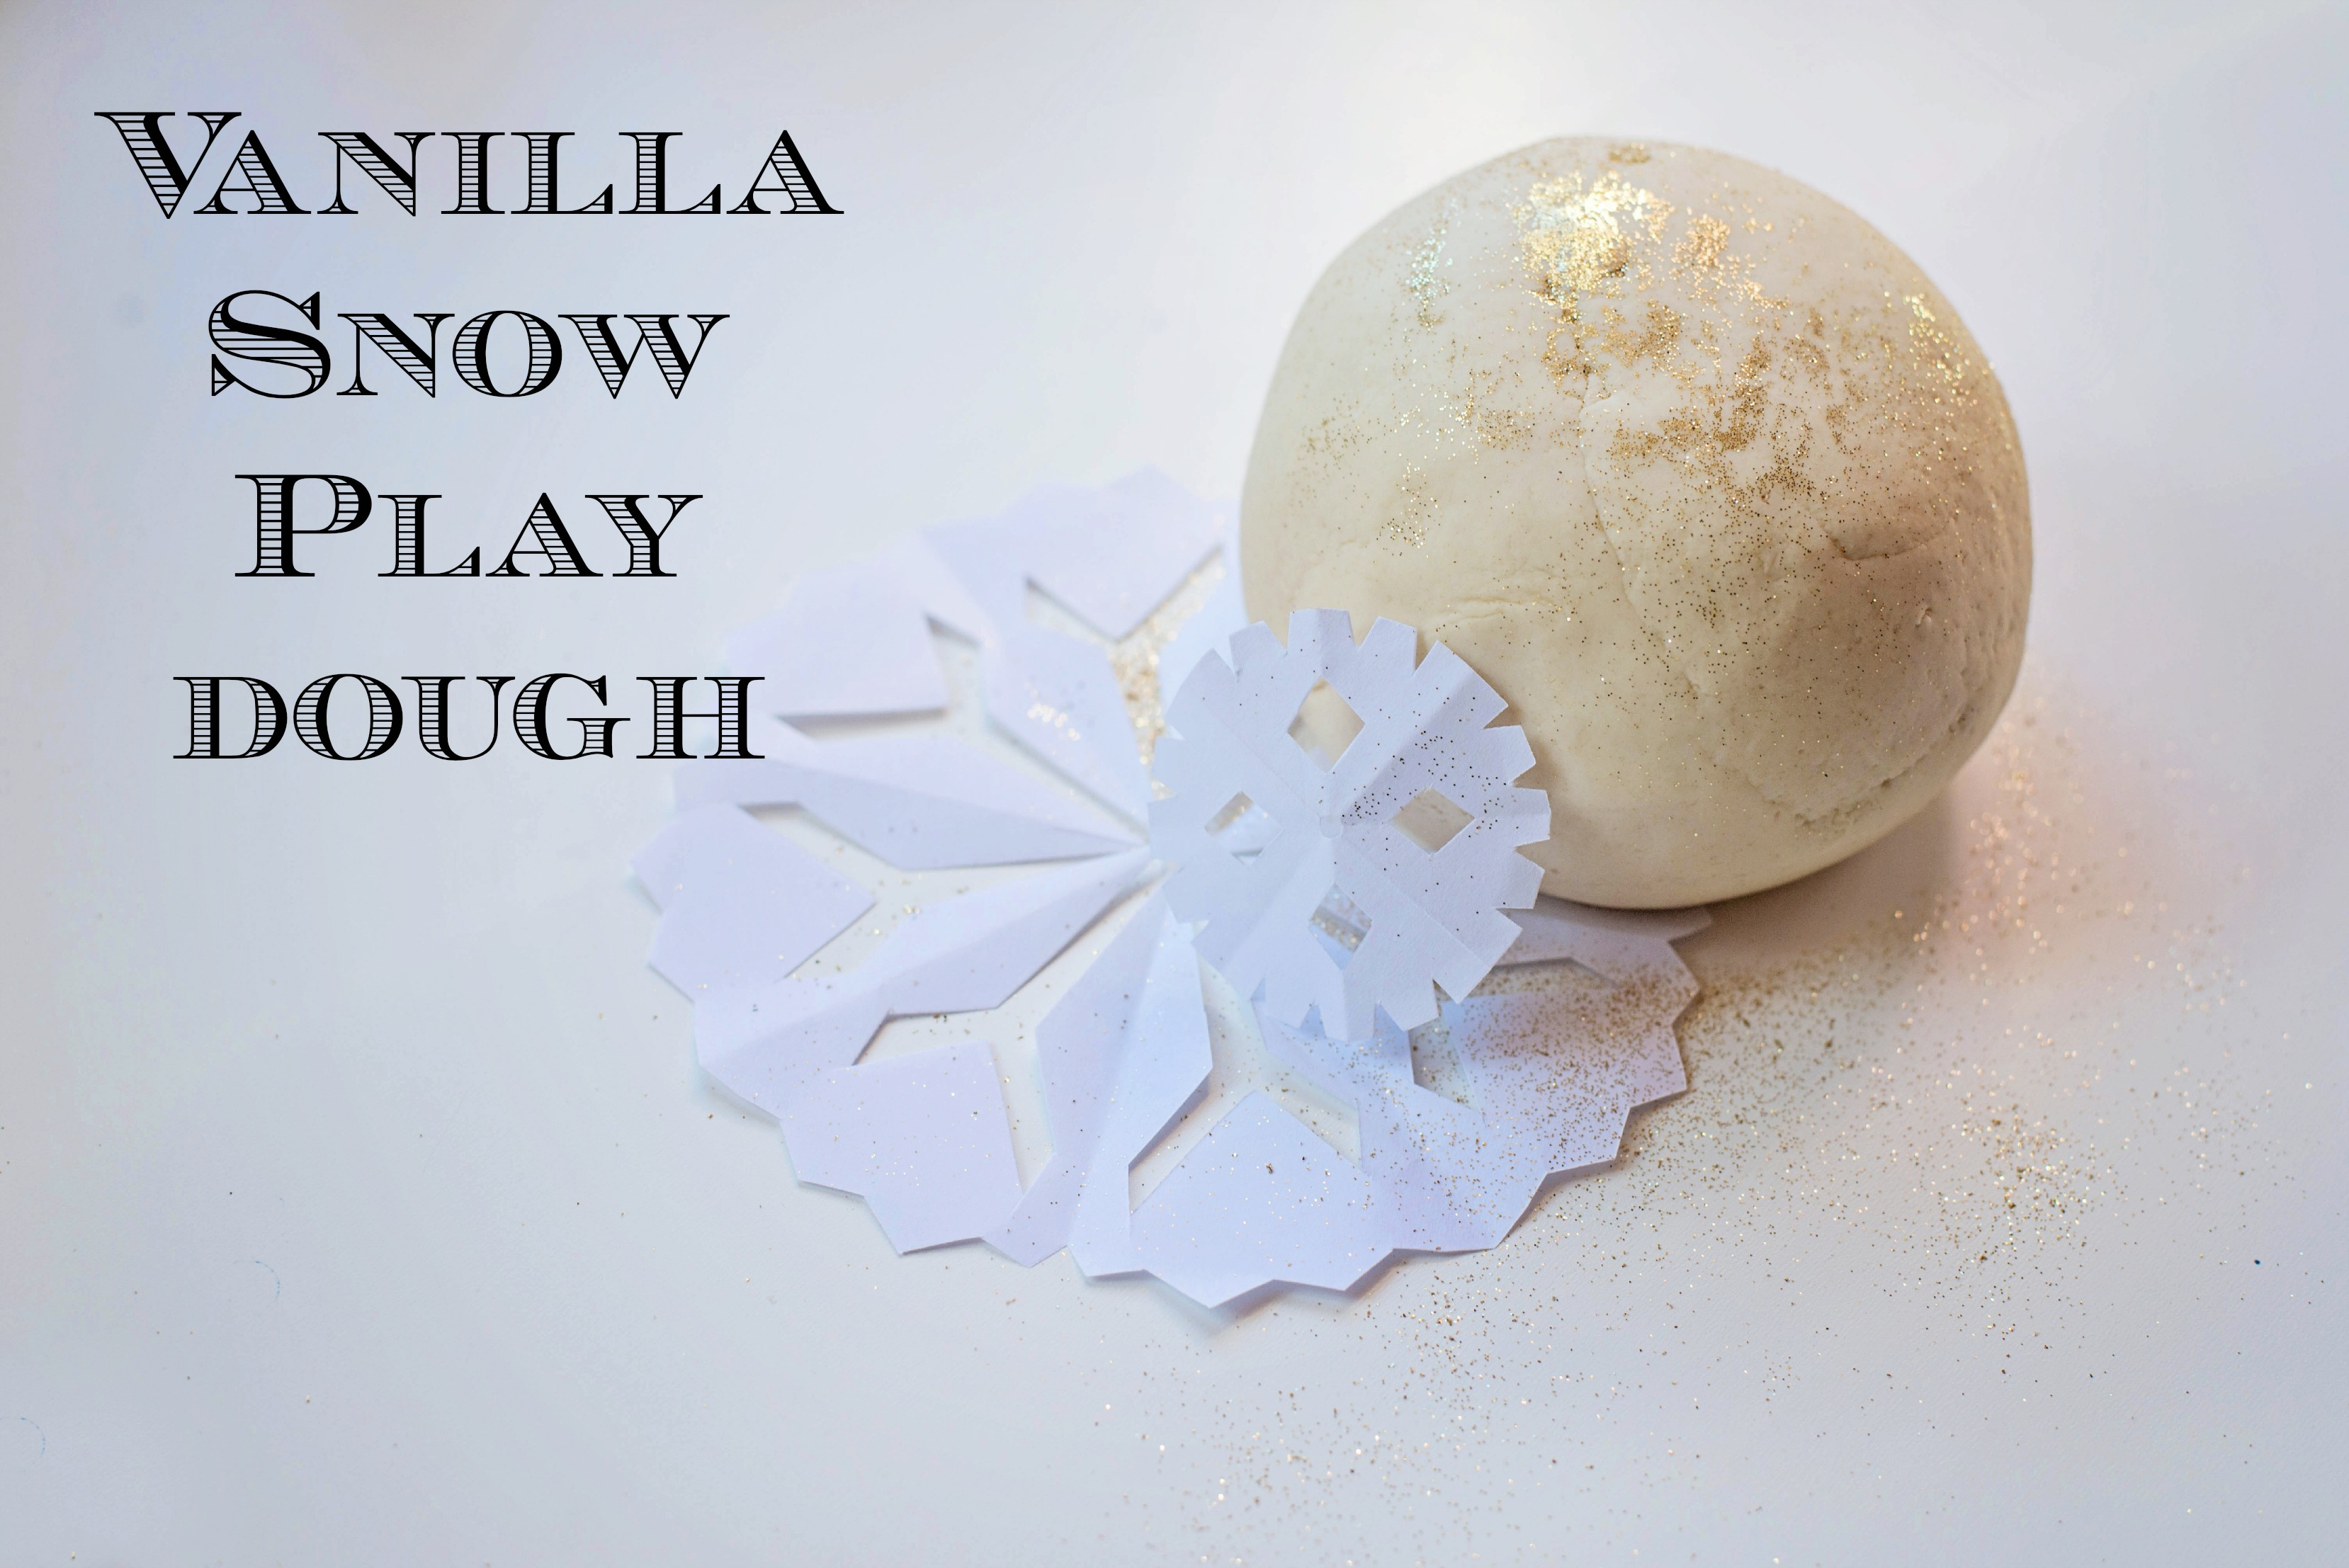 Five uniquely scented play doughs, perfect for celebrating the Christmas season!